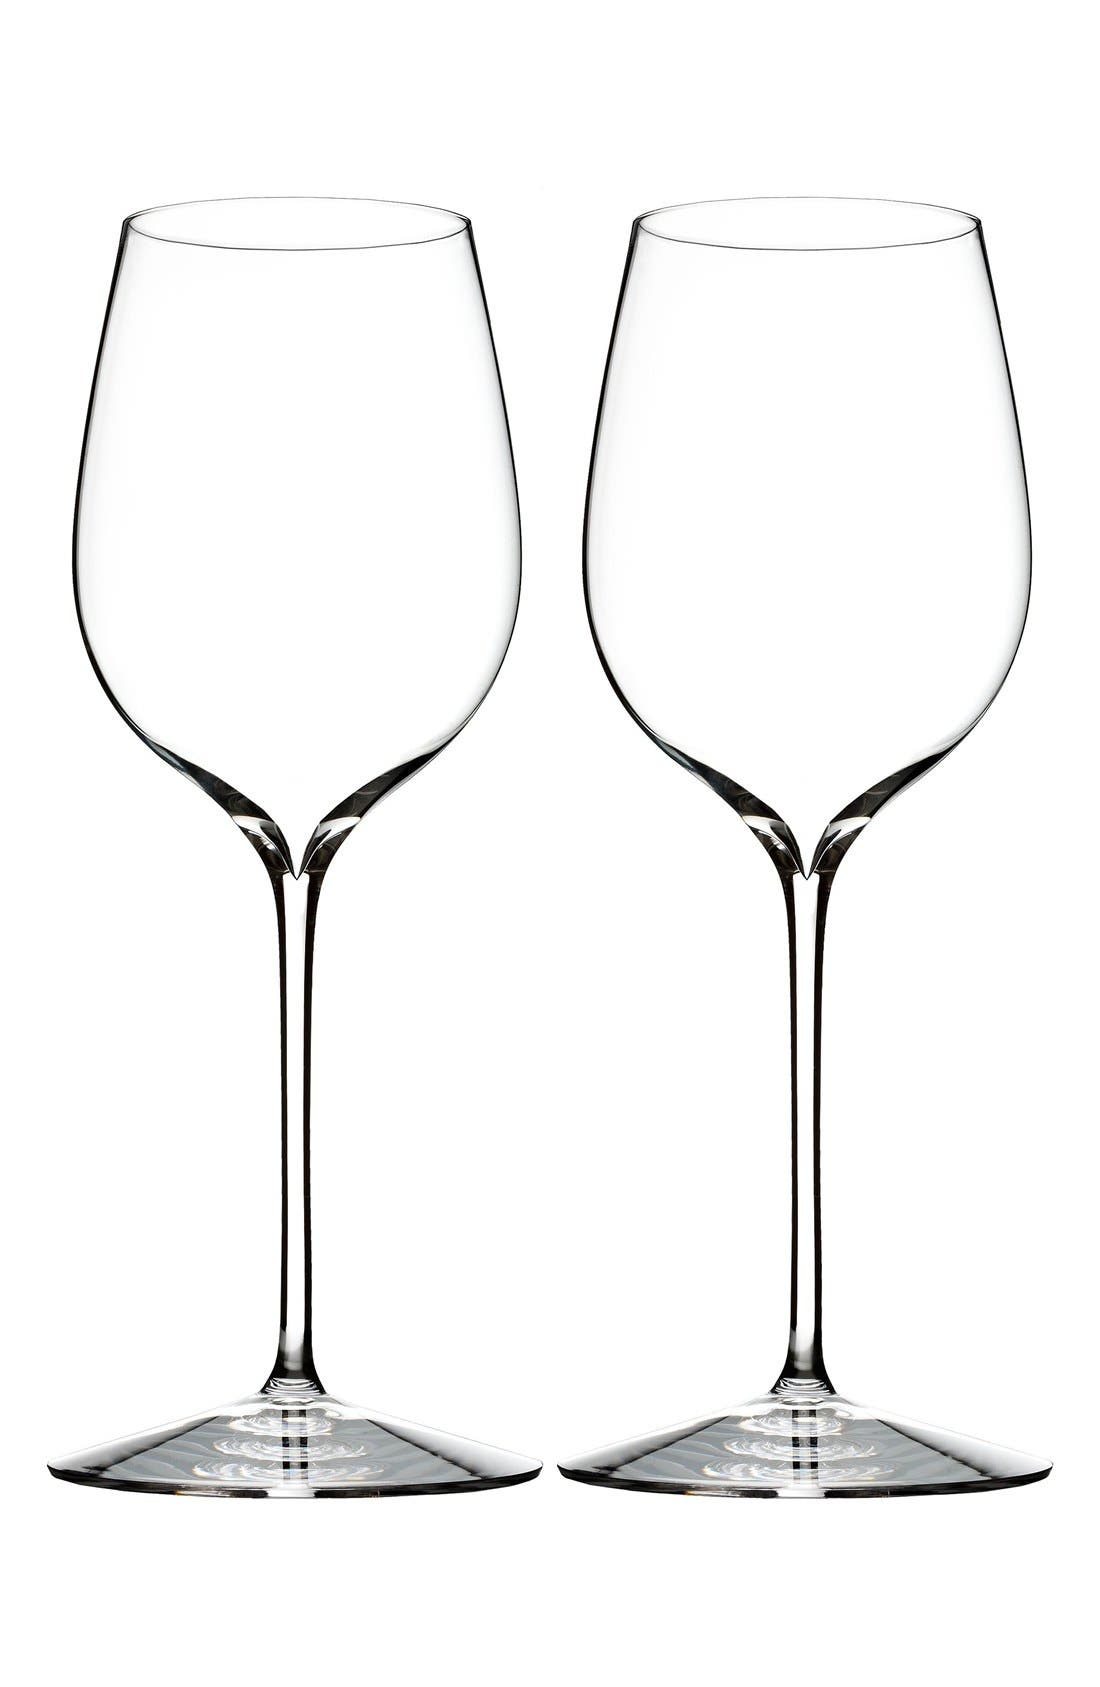 'Elegance' Fine Crystal Pinot Noir Glasses,                             Main thumbnail 1, color,                             Clear